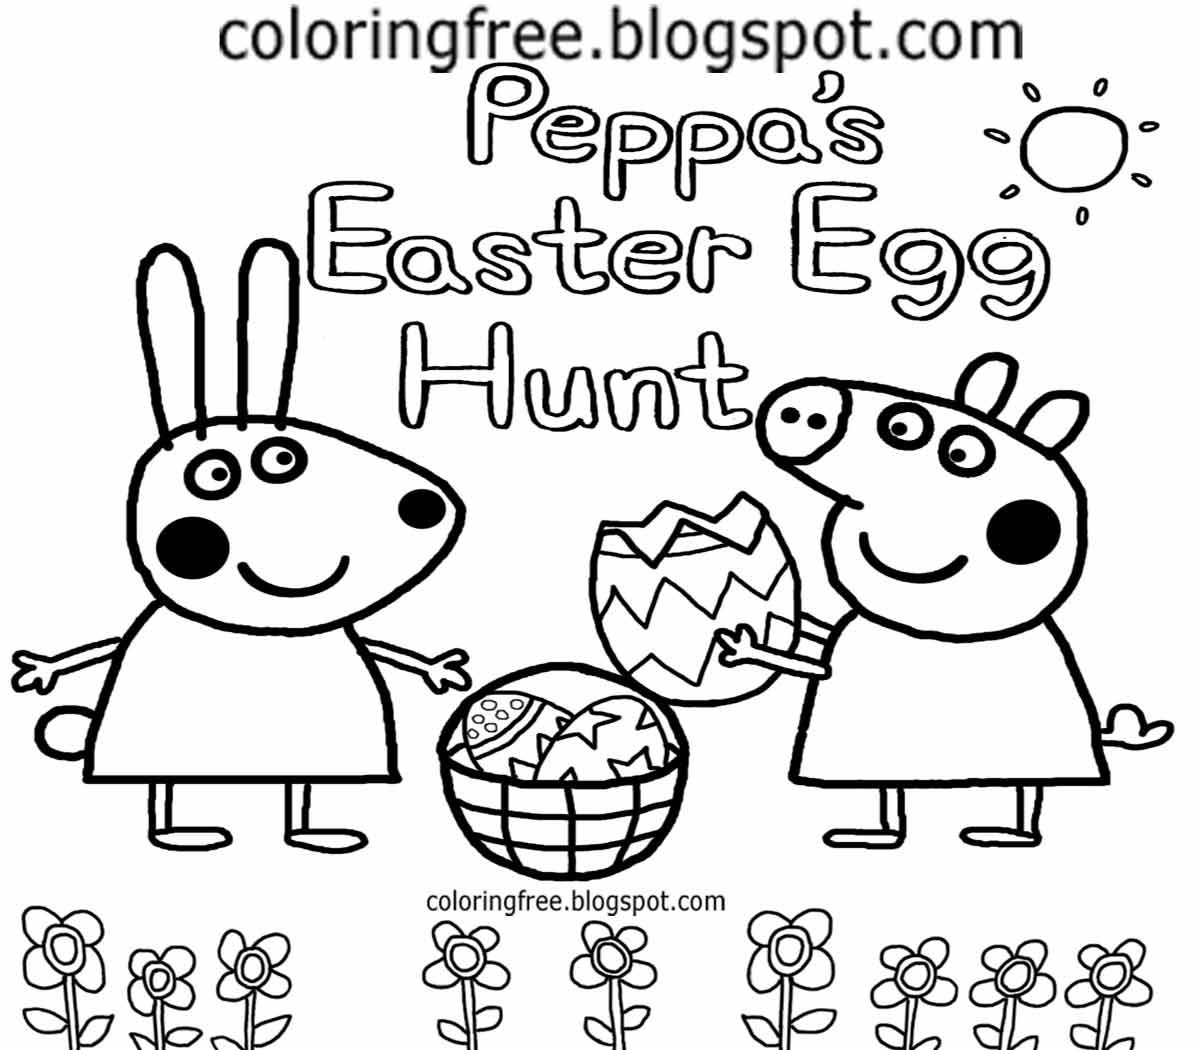 Pin by Sandy on Peppa Pig | Easter coloring pages, Bunny ...